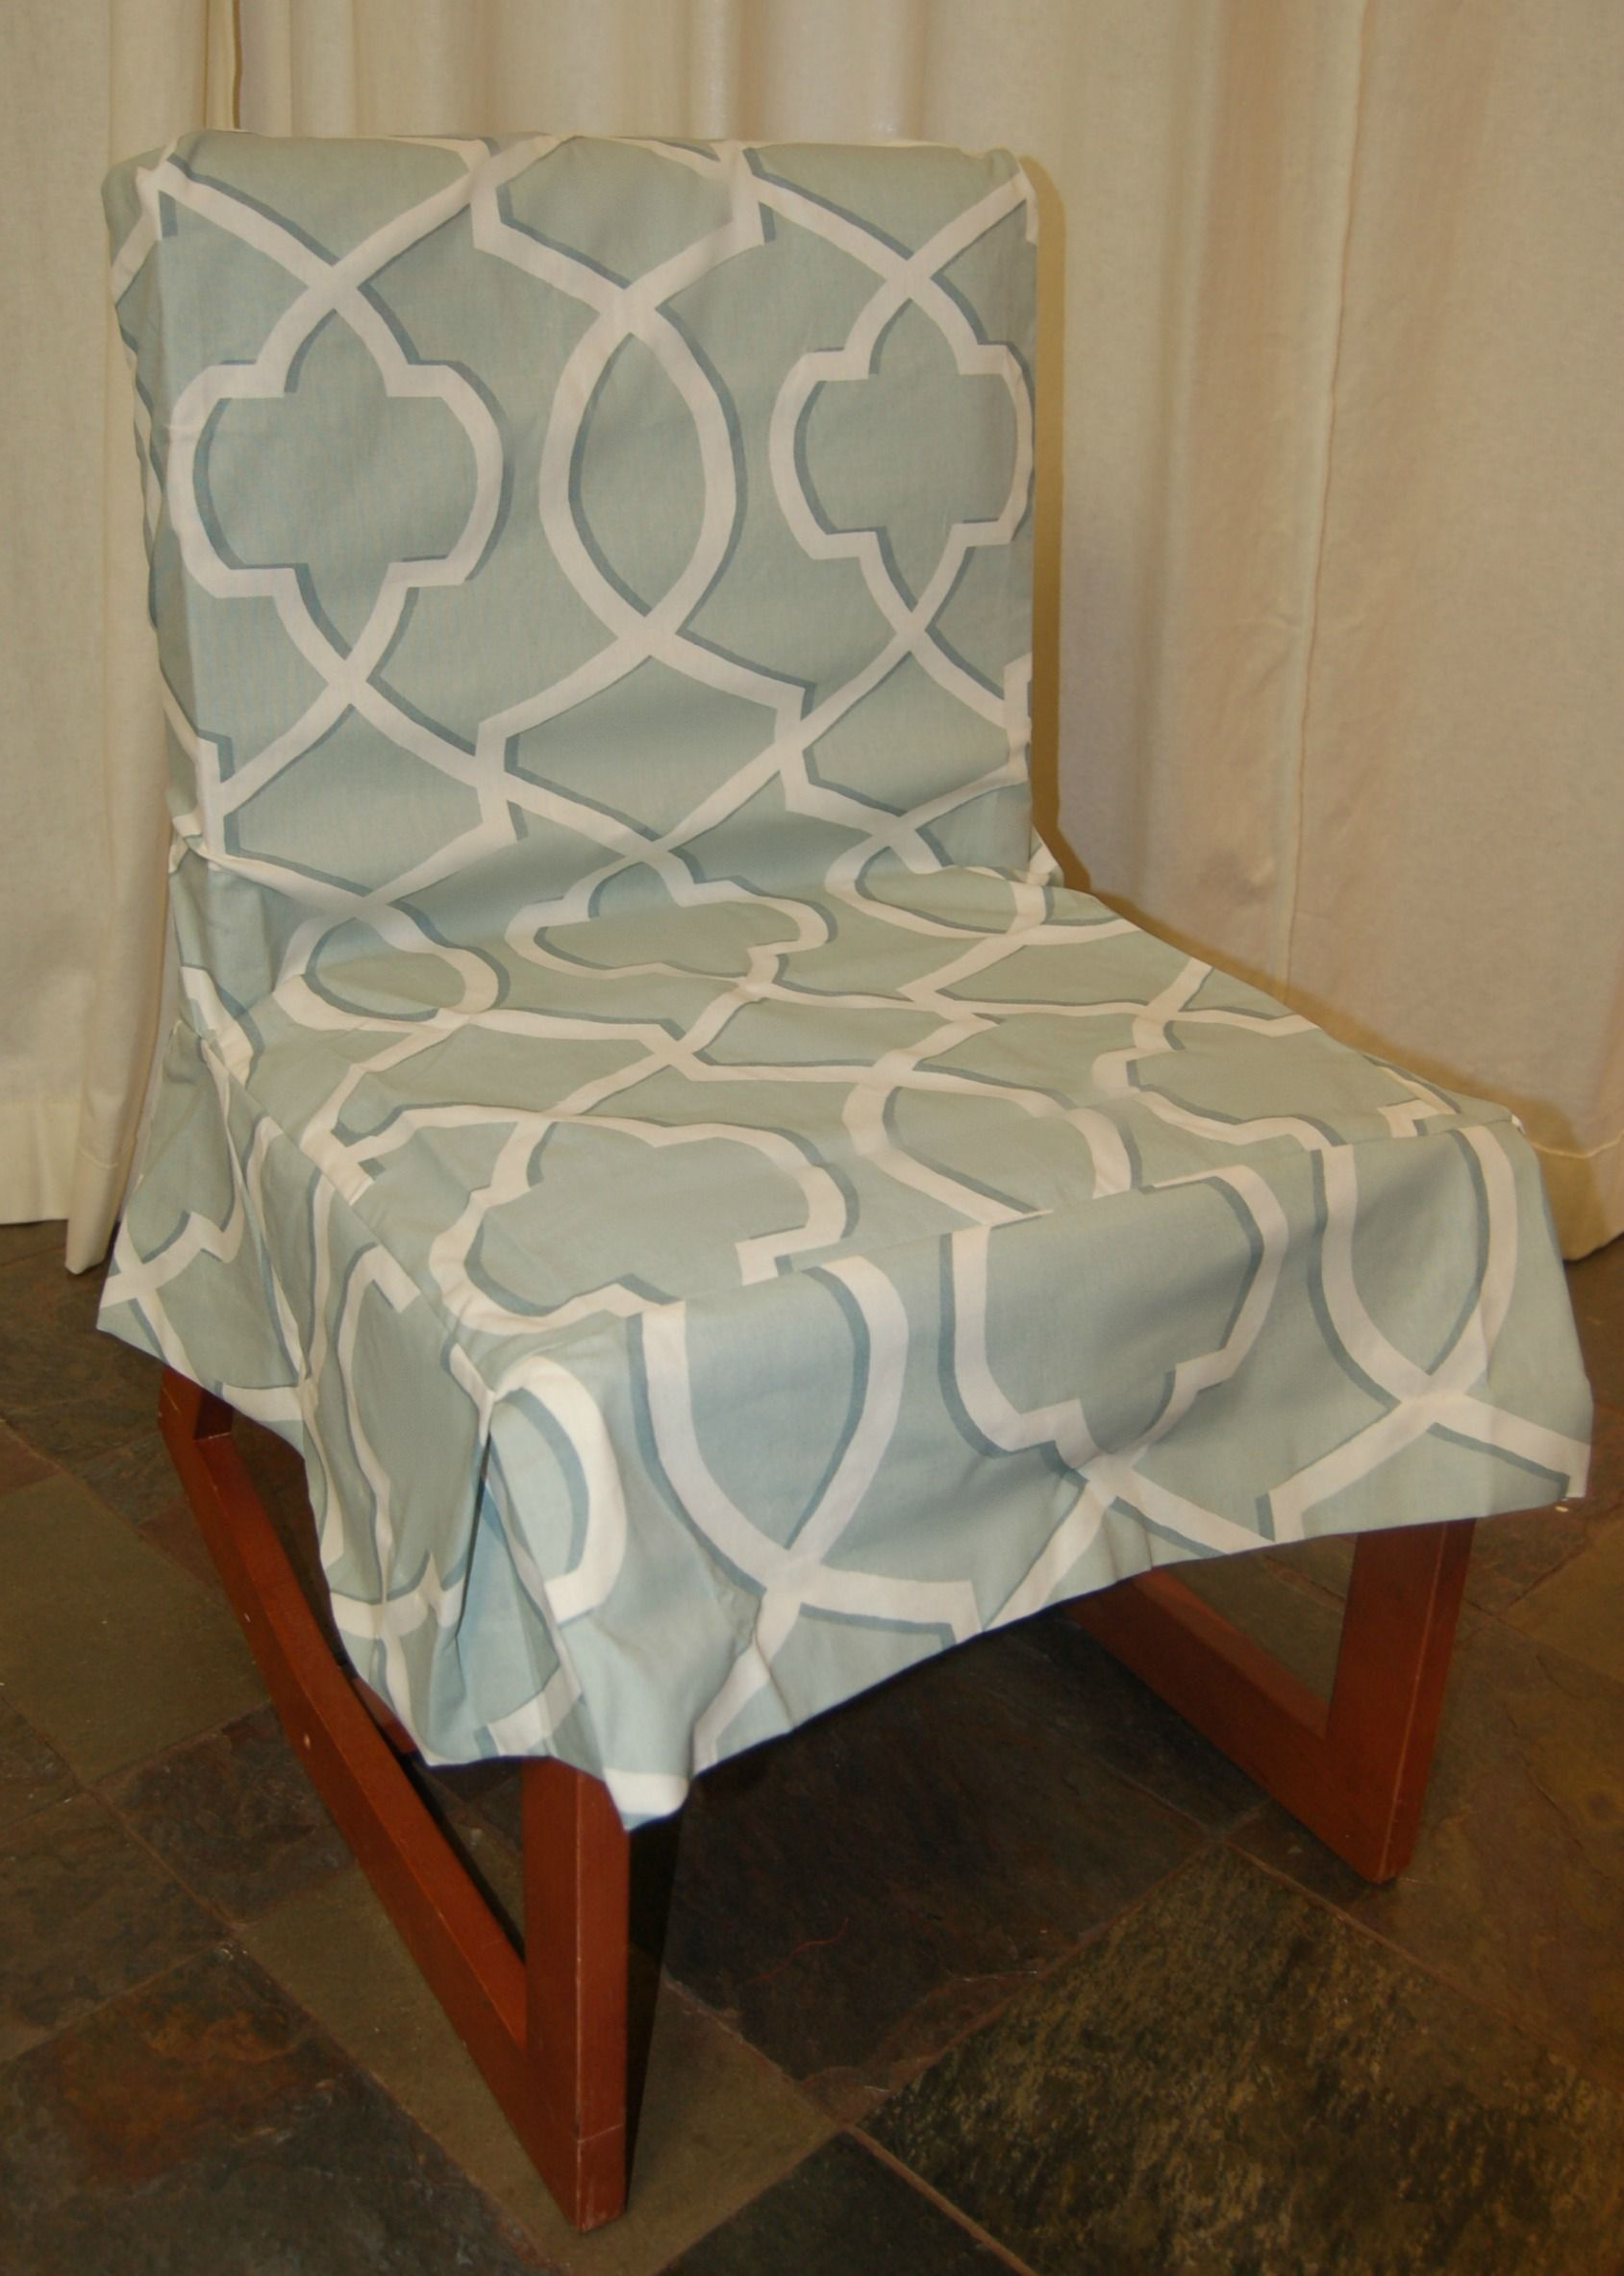 Dorm Room Chairs Dorm Suite Dorm Saffron Grey Morrow Dorm Chair Slipcover College